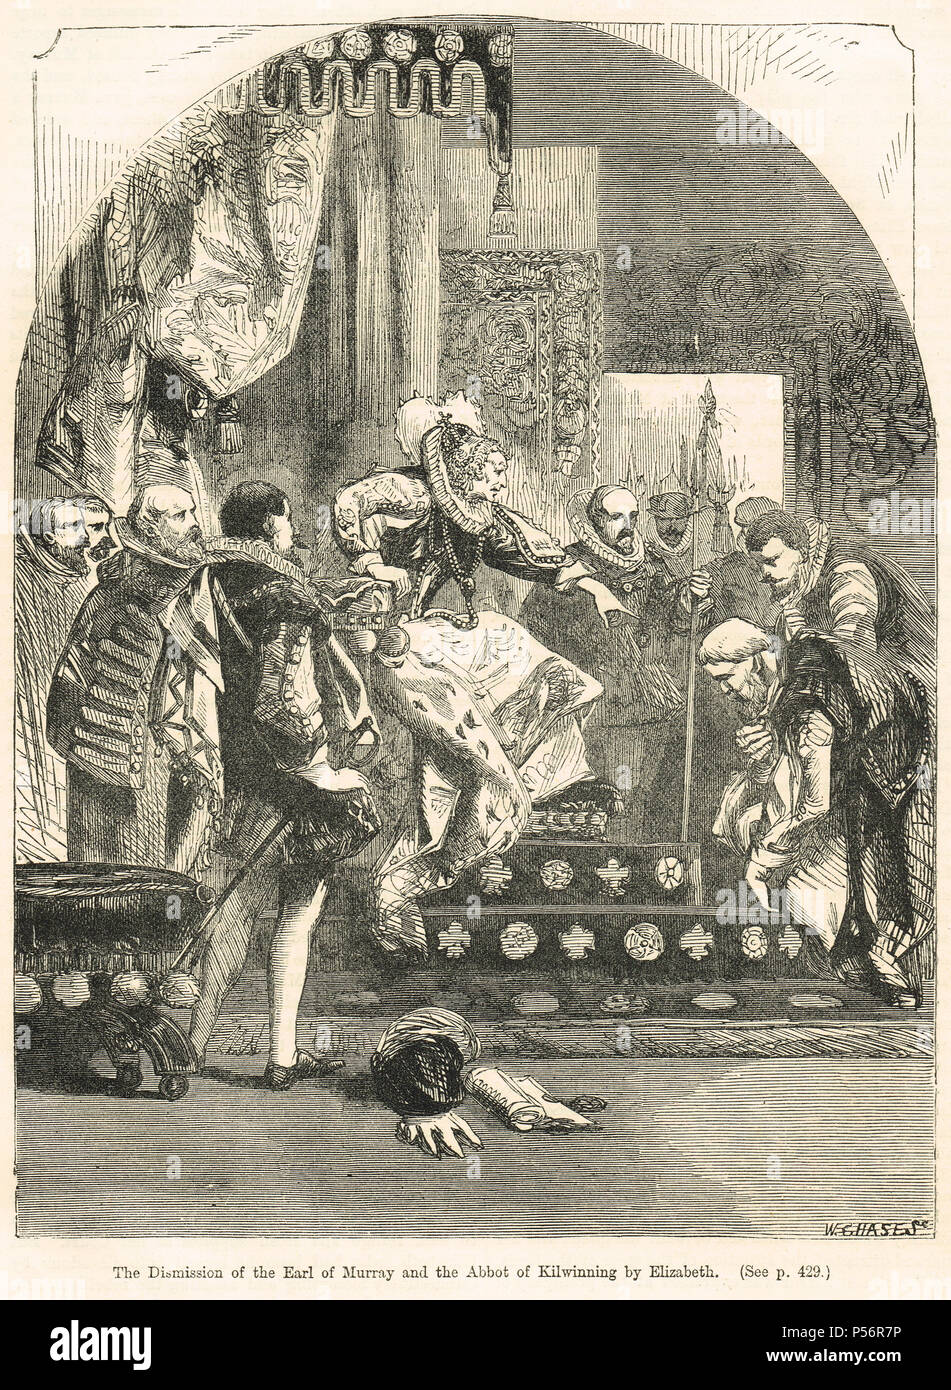 Dismission of the Chaseabout Raid rebels, the Abbot of Kilwinning and James Stewart, 1st Earl of Moray,  by Queen Elizabeth I, 1561 Stock Photo